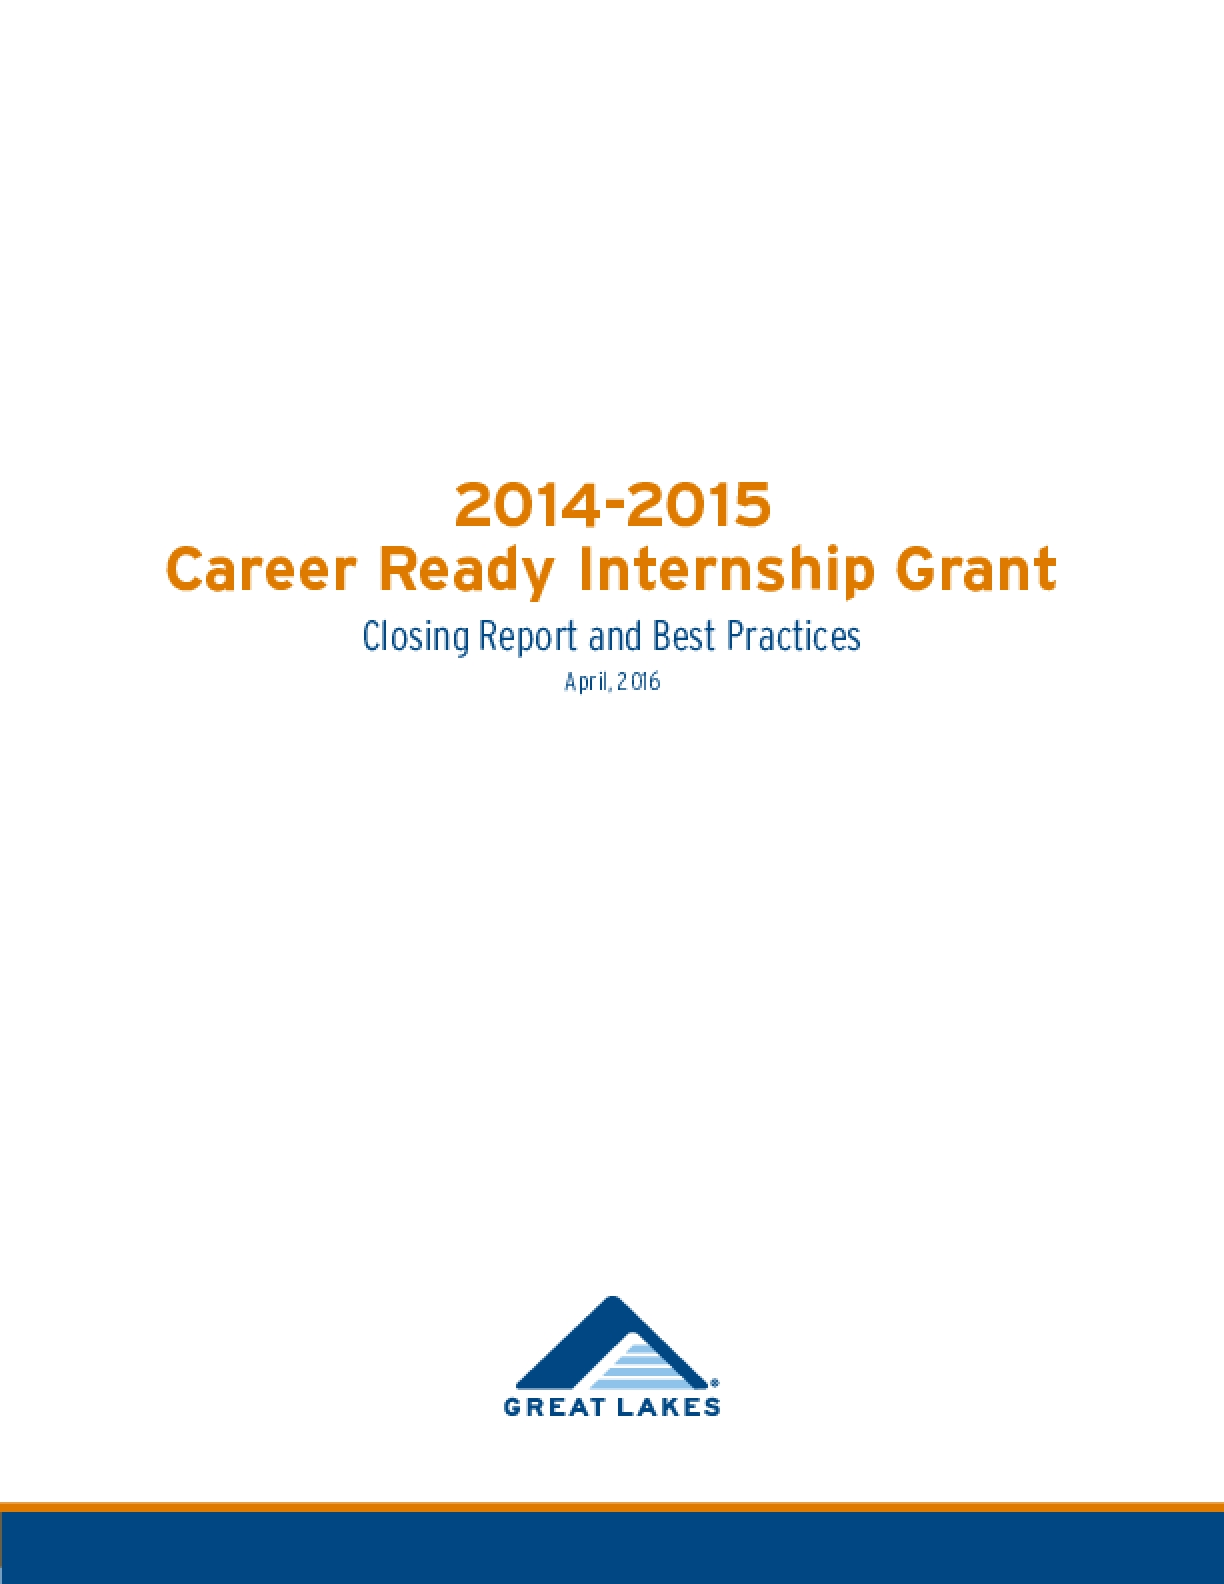 2014-2015 Career Ready Internship Grant: Closing Report and Best Practices